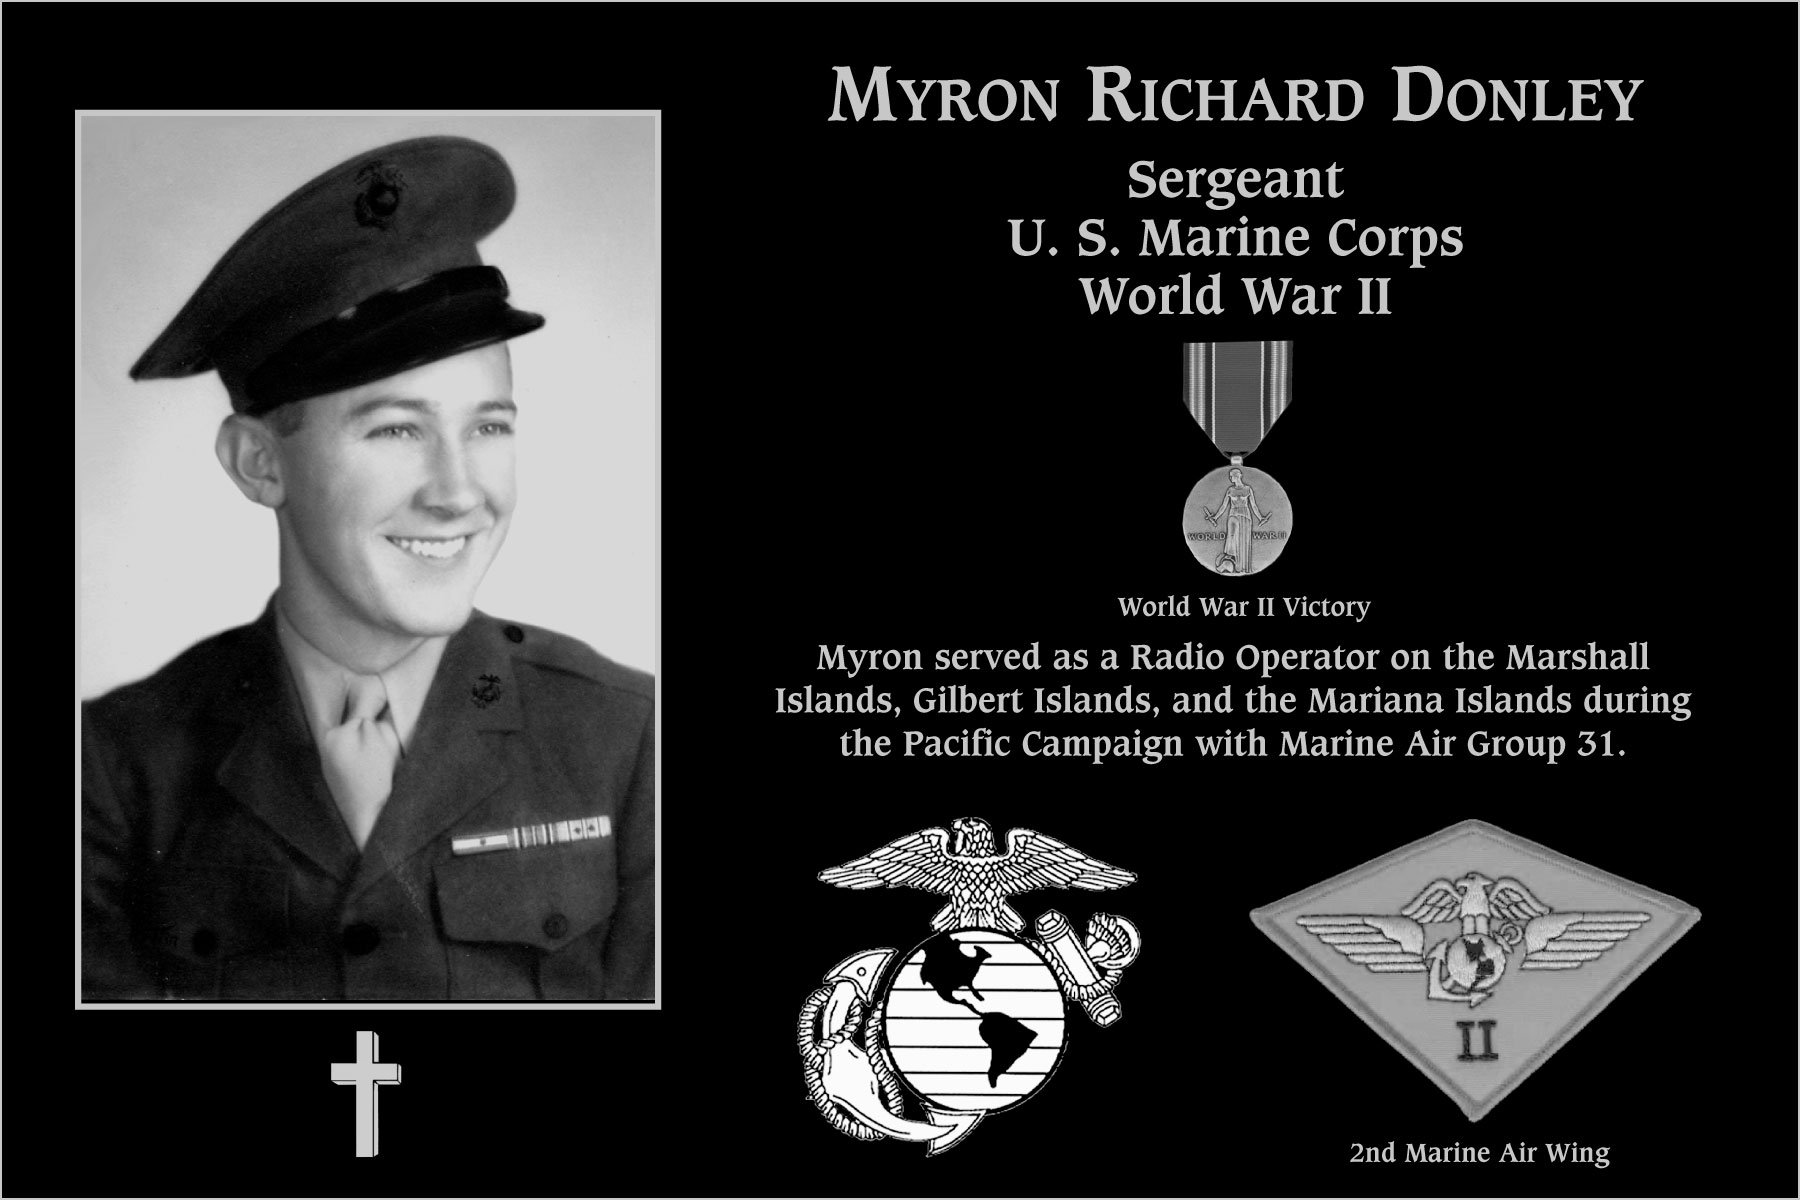 Myron Richard Donley